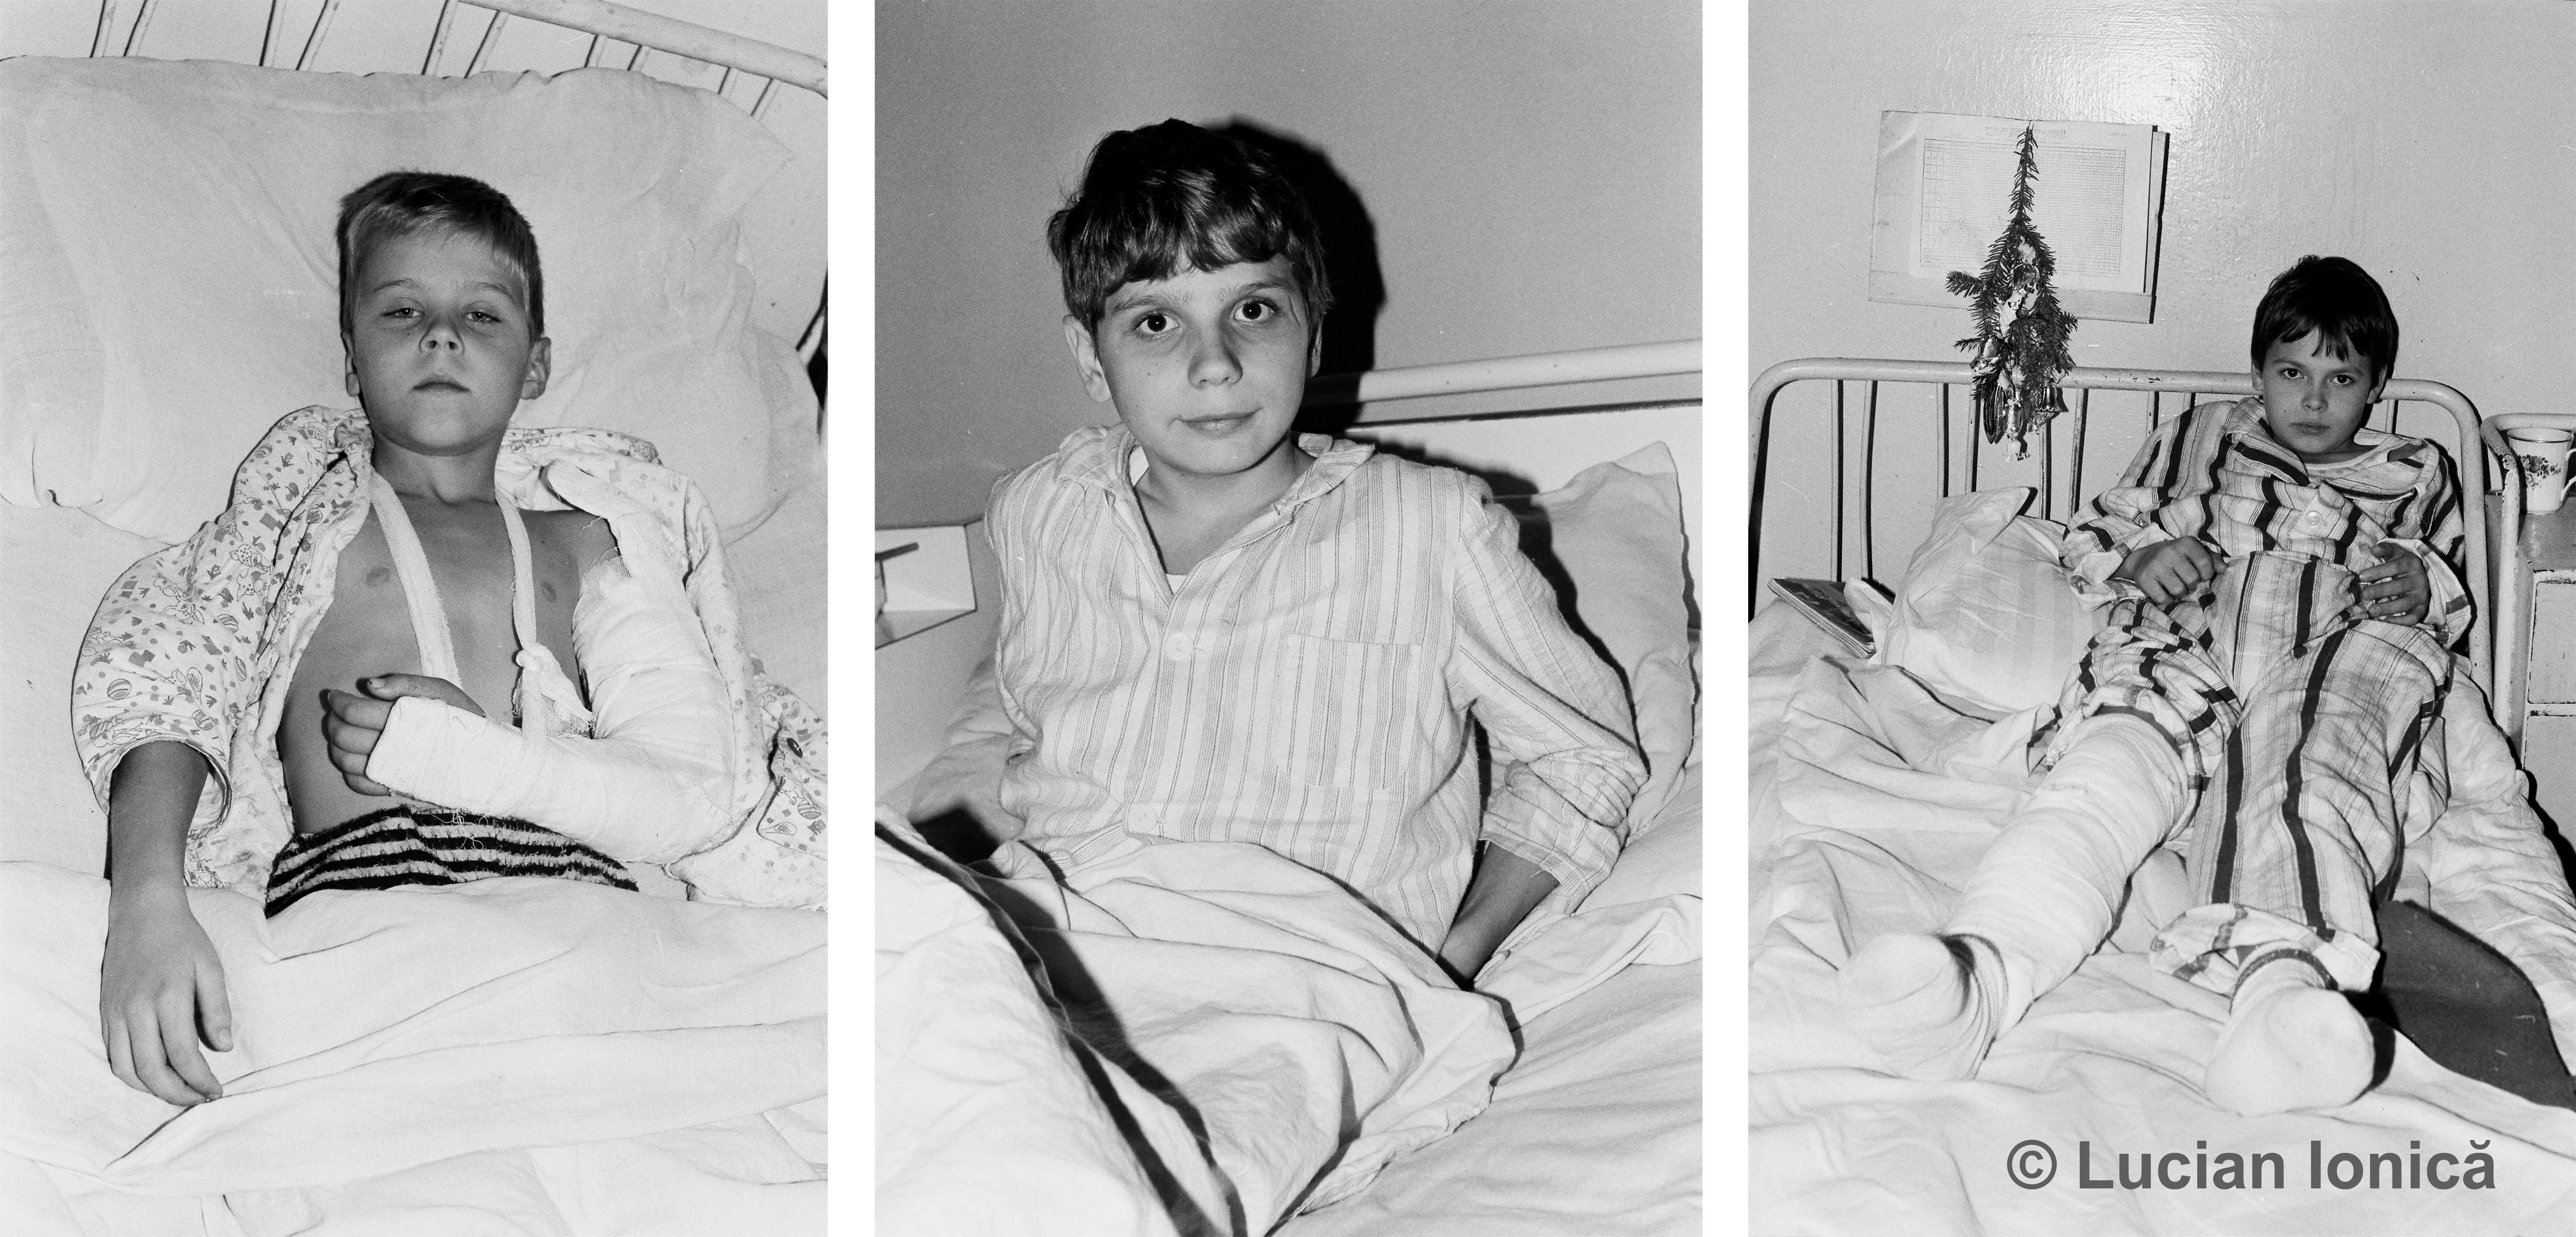 Wounded children, Timișoara, December 1989